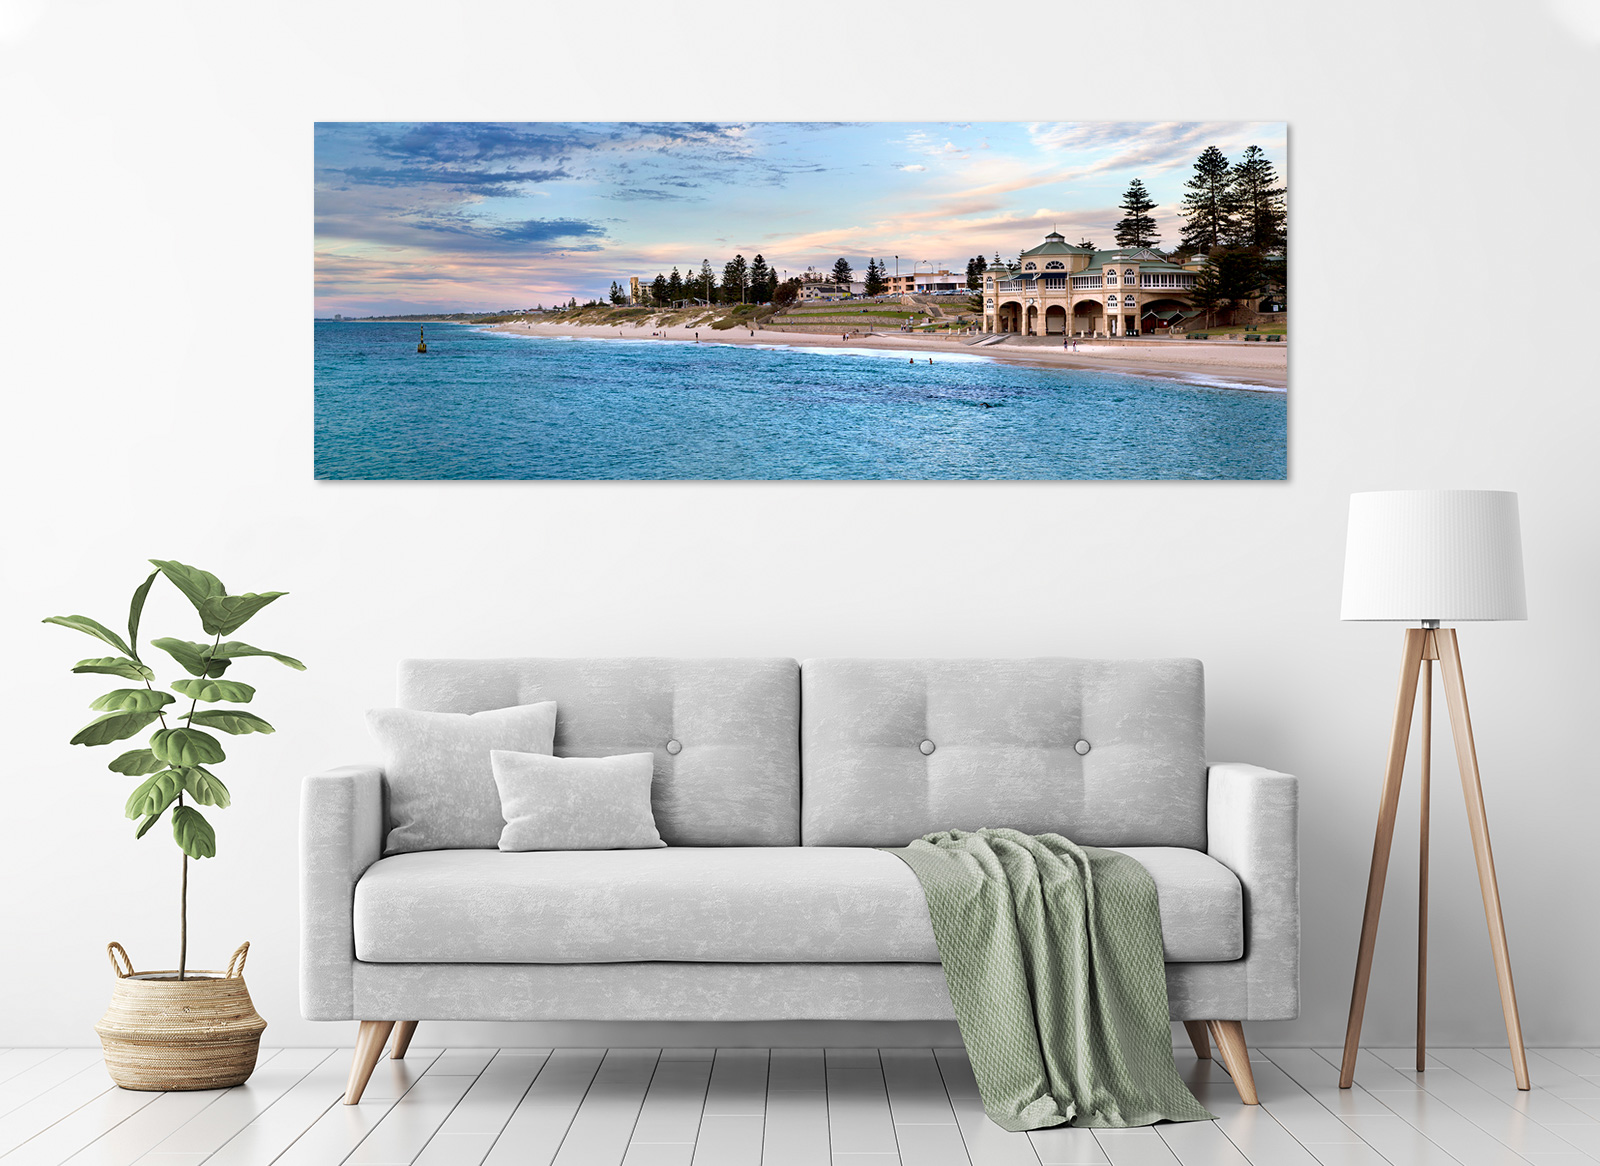 Jason Mazur - 'The Tea Rooms, Cottesloe Beach 002' in a room